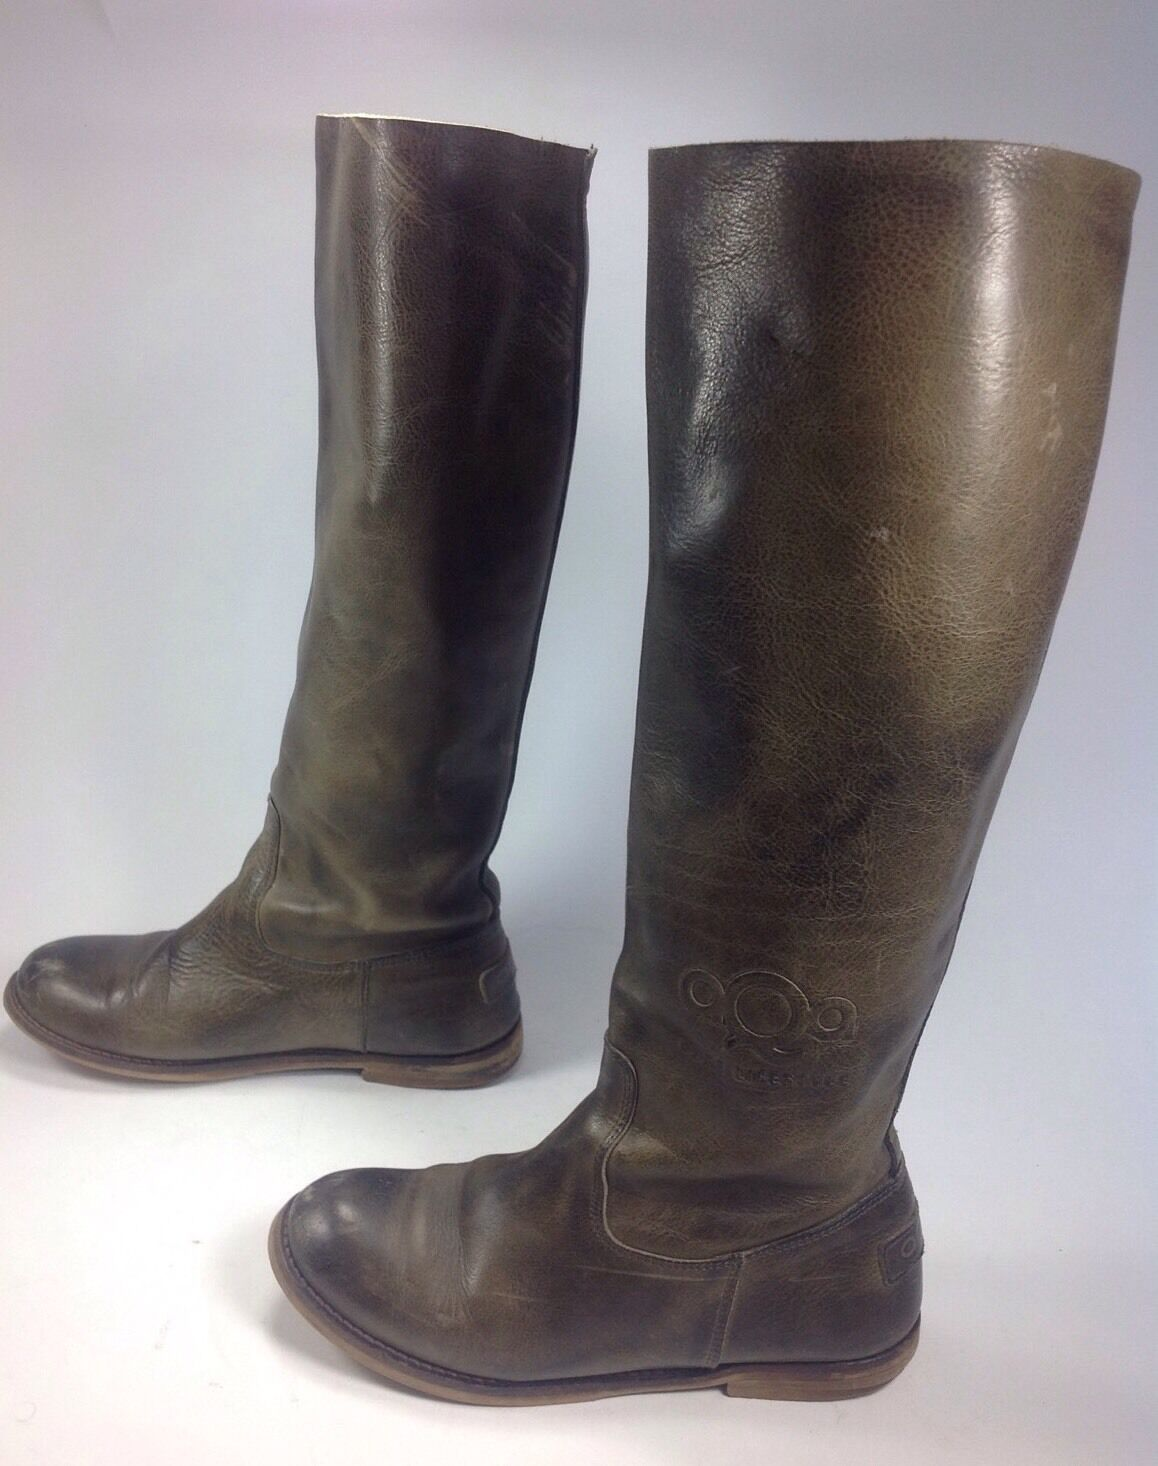 Women's AQA Pure Lifestyle Green Leather High Round Toe Riding Boots Sz.5.5